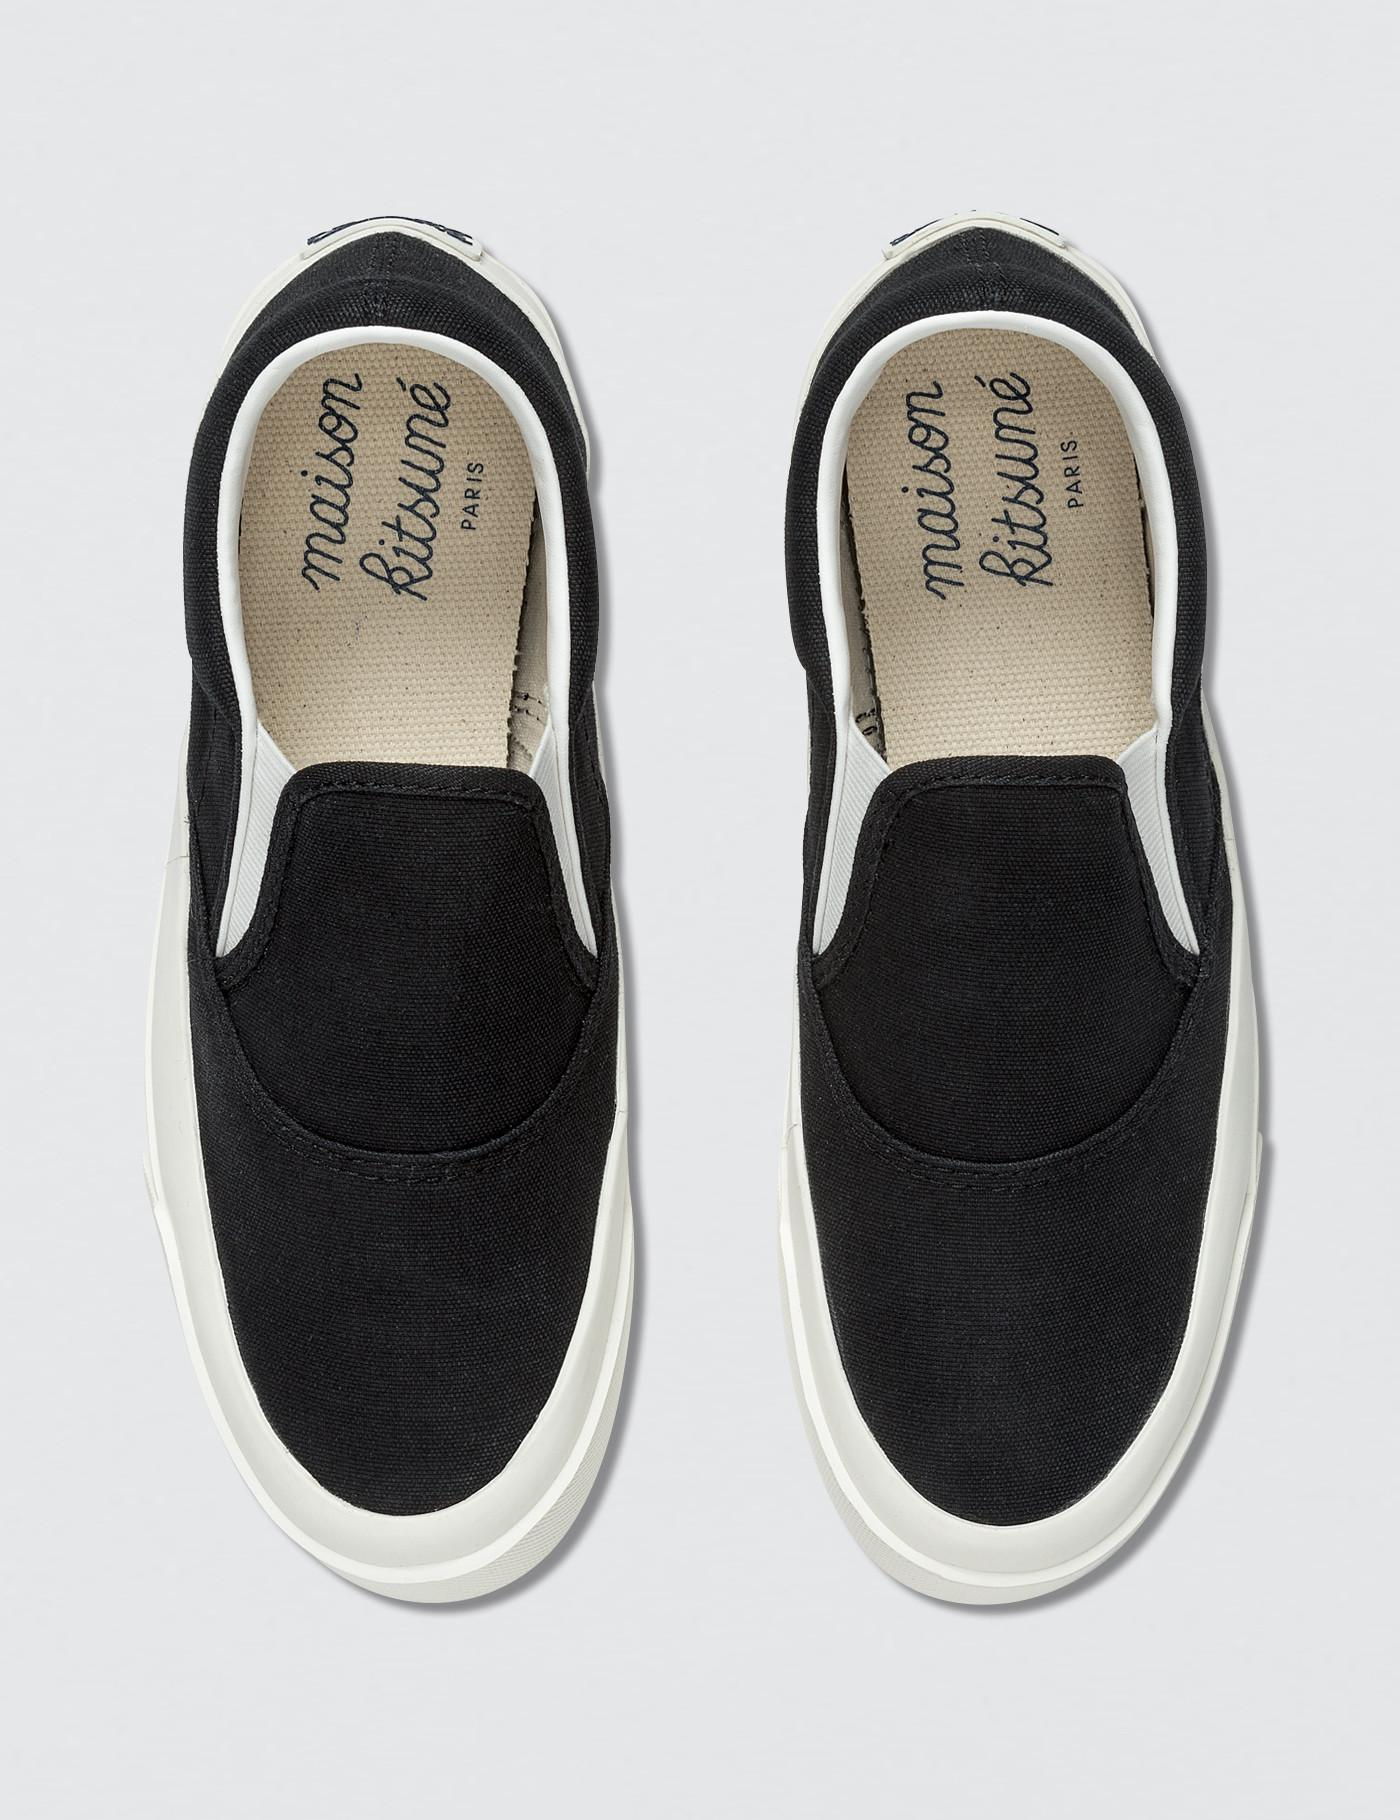 factory price 35261 18d16 maison-kitsune-Black-Par-Rec-Slip-on-Sneaker.jpeg